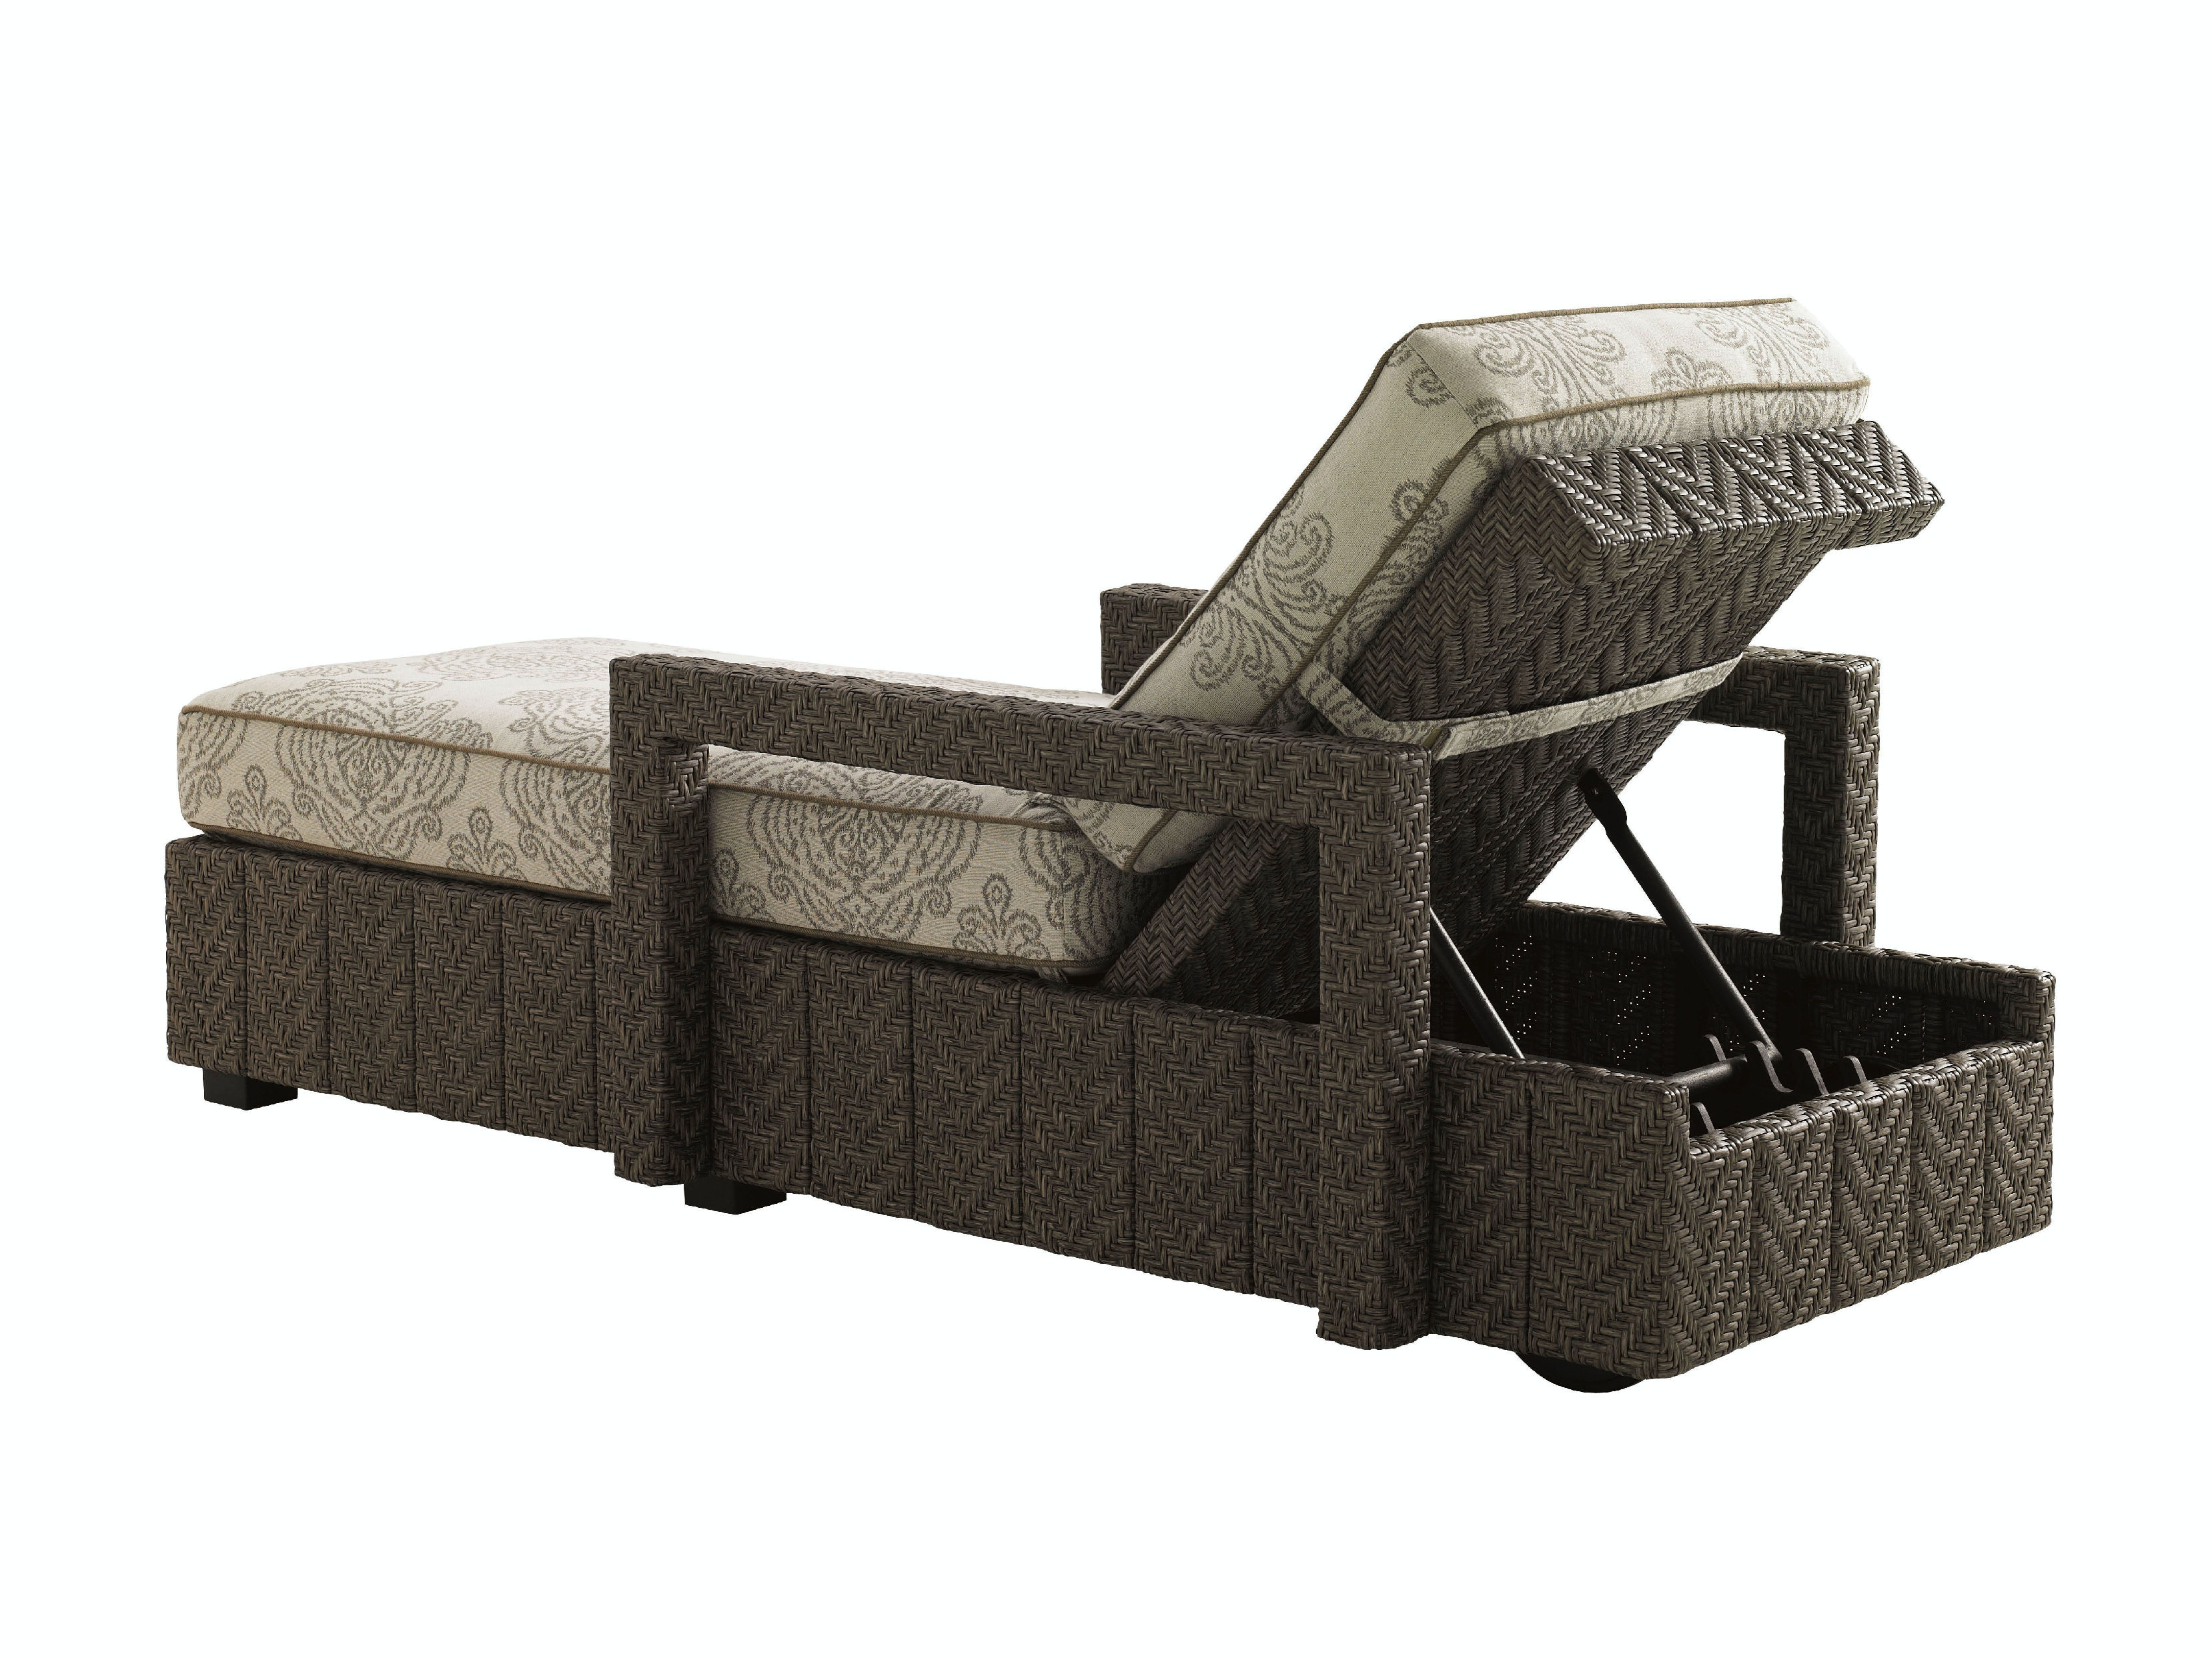 Tommy Bahama Outdoor Living Chaise Lounge 3230-75  sc 1 st  Louis Shanks : tommy bahama chaise lounge - Sectionals, Sofas & Couches